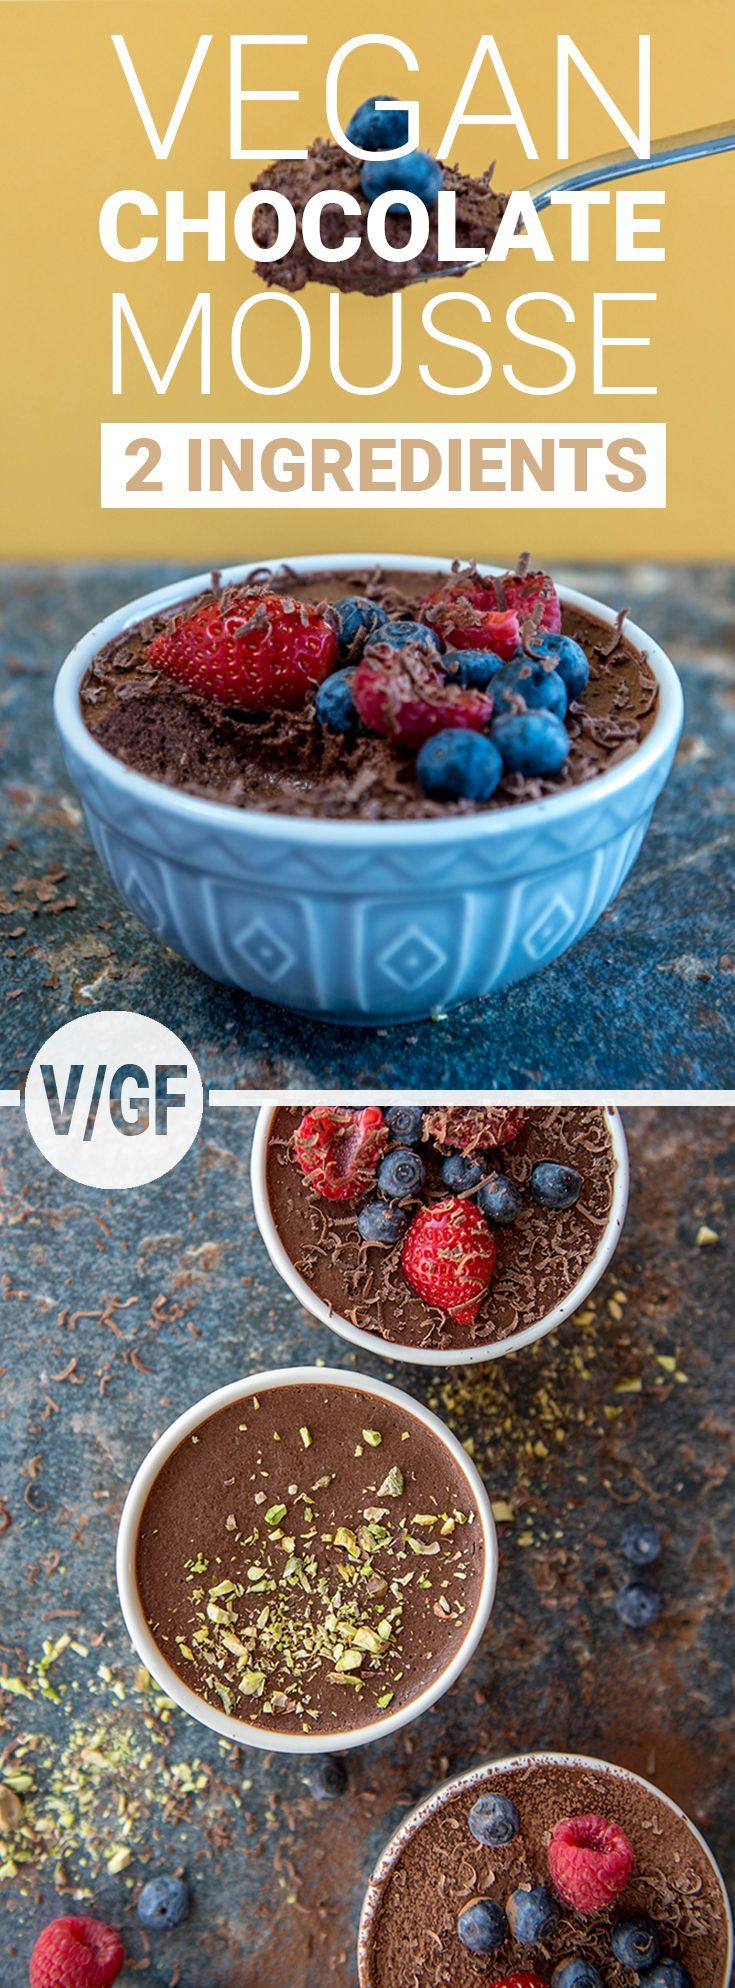 With only two ingredients and made in under 25 minutes (with minimal cleaning up after) this is the most impressive dessert recipe. Made with whipped chickpea juice, no one will ever know that it's completely vegan. #vegan #glutenfree #chocolate #dessert #chocolatemousse